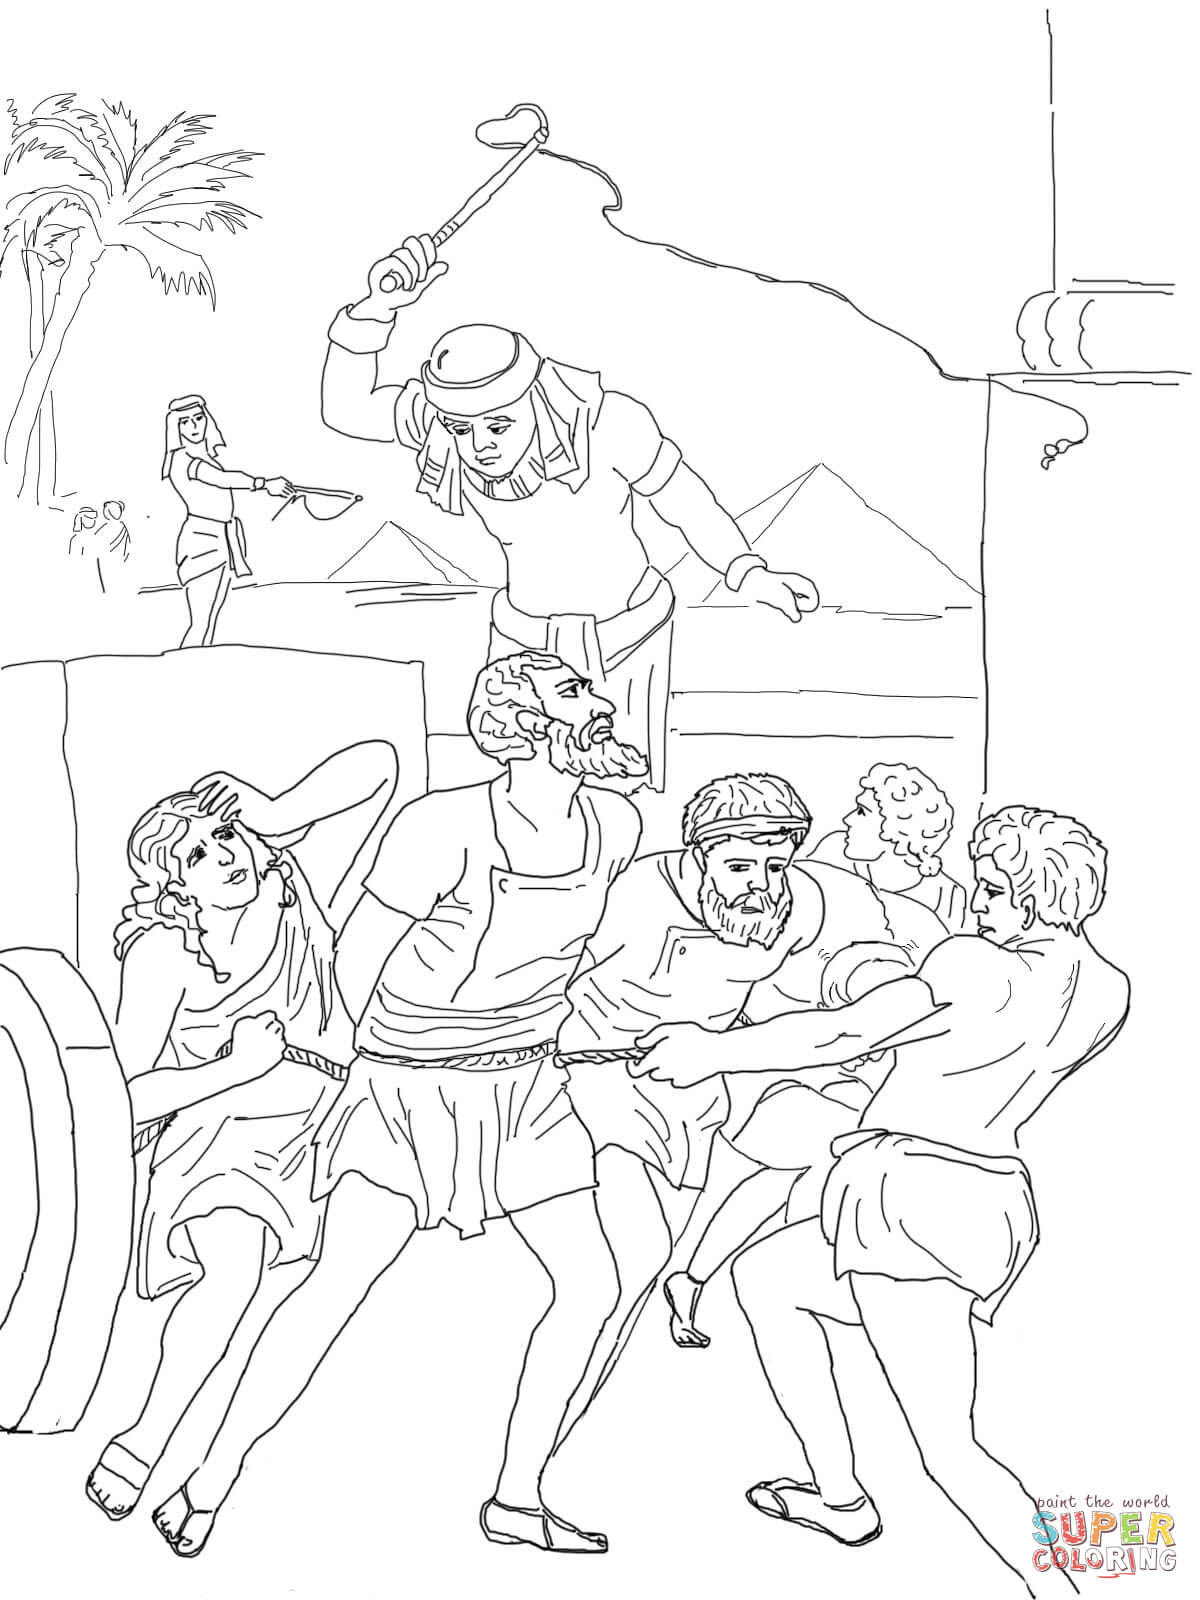 The Bible Israelites Leaving Egypt Coloring Pages Sketch Coloring Page